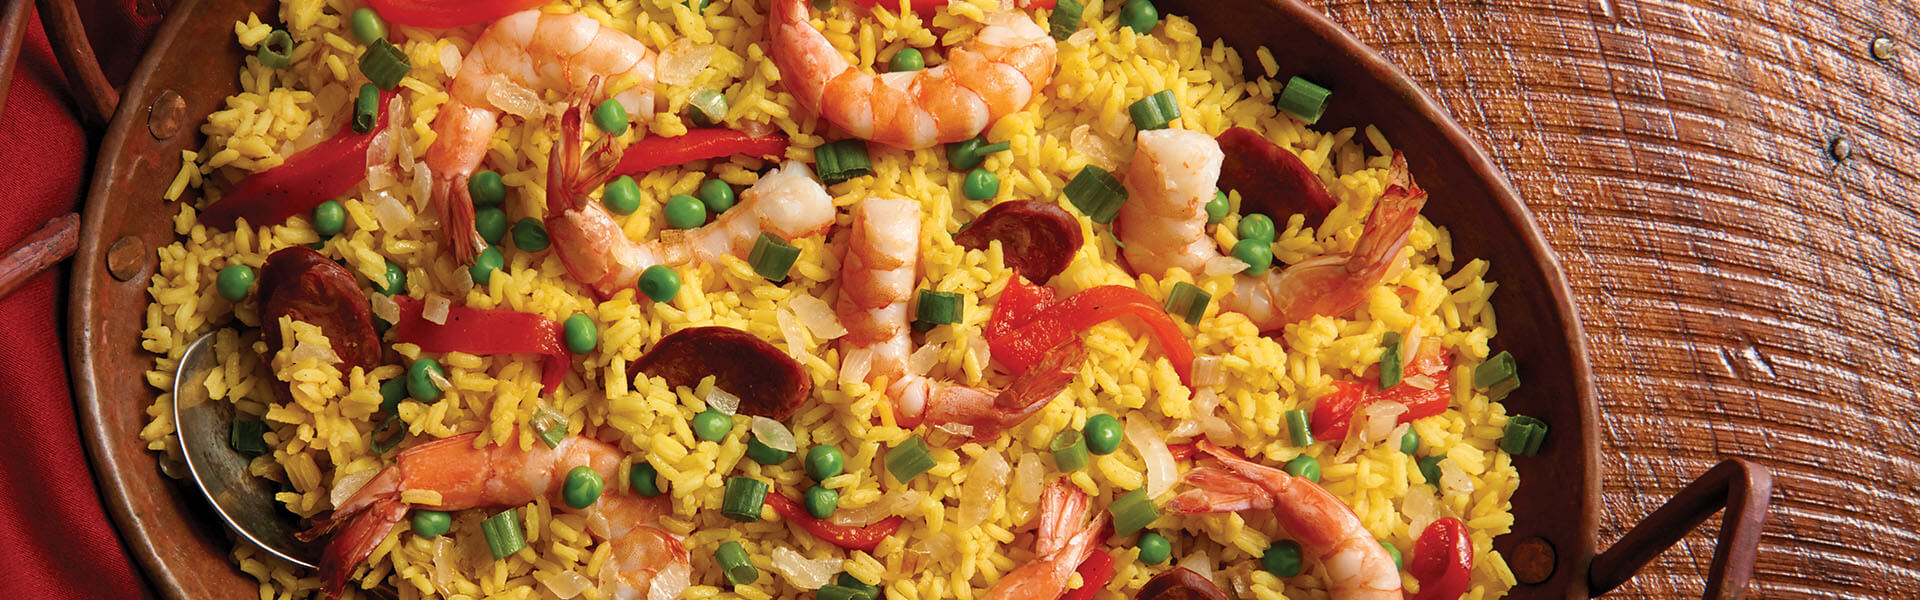 Easy Paella with Sausage & Shrimp